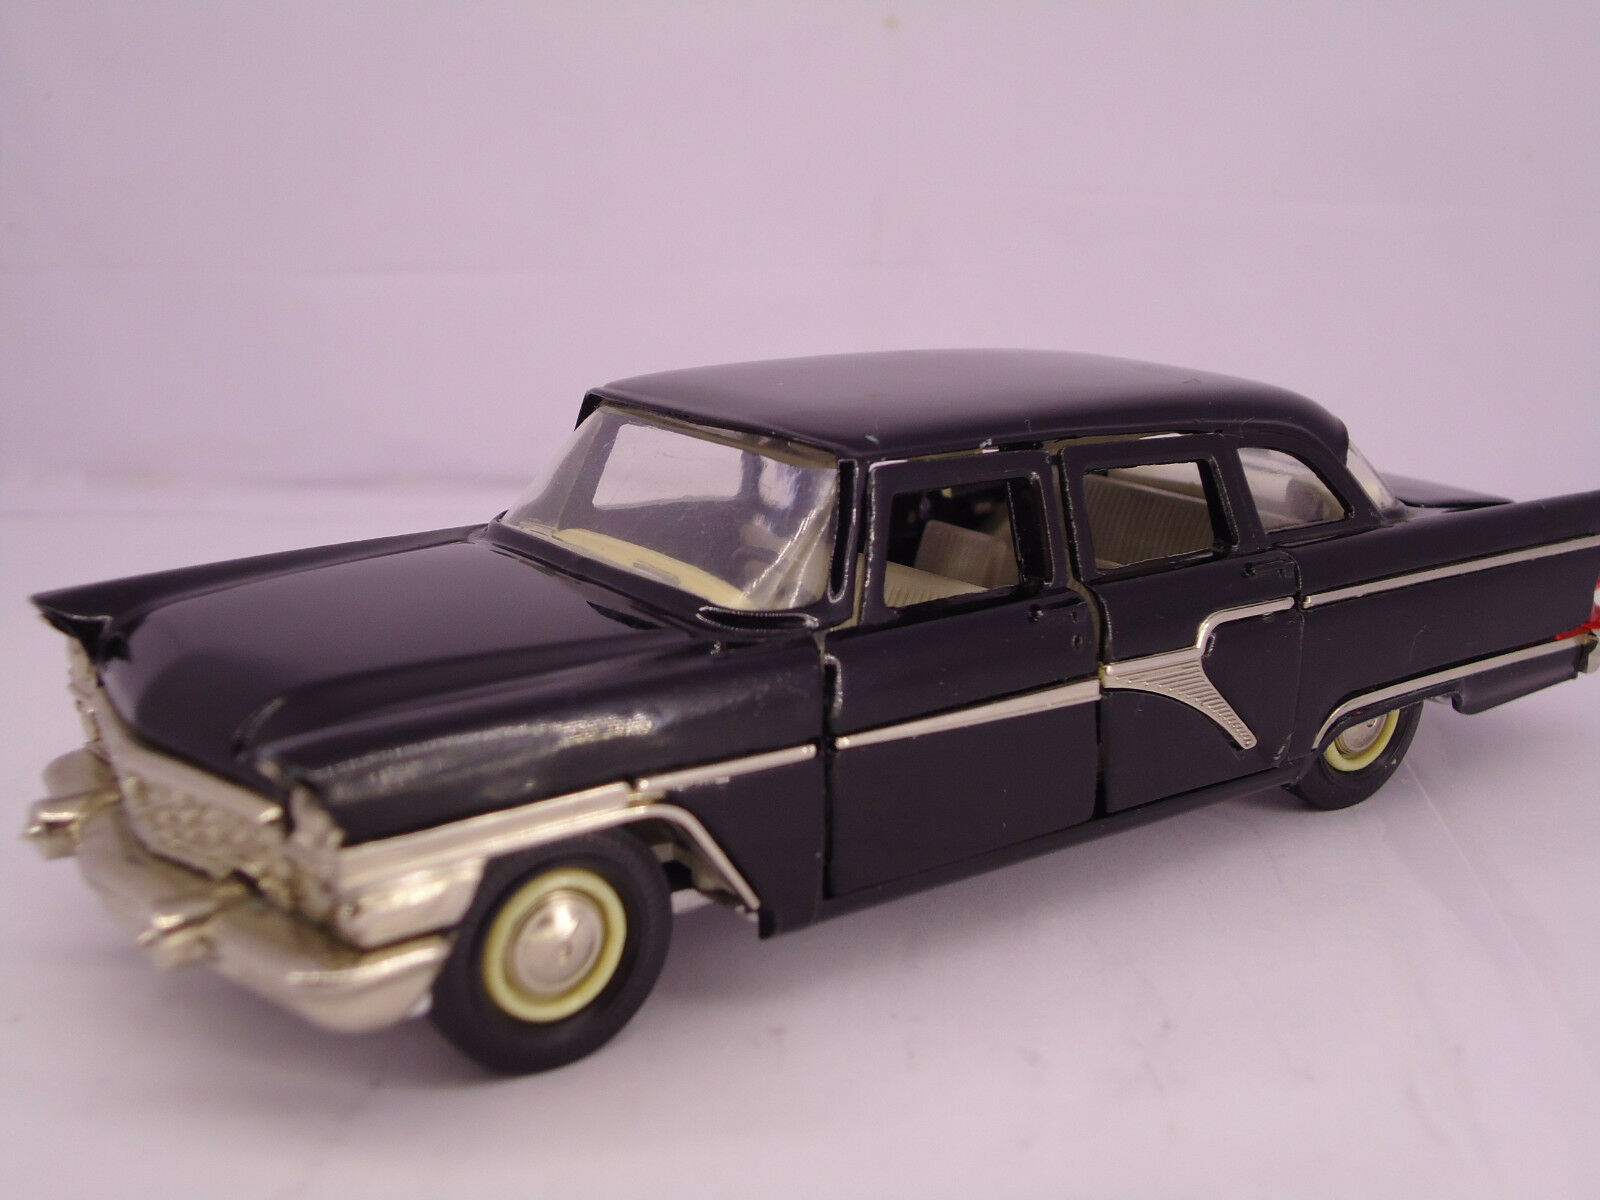 RARE 1980's  ANTIQUE CHAYKA Gaz 13 car model A15, 1 43, Made in USSR, ORIGINAL